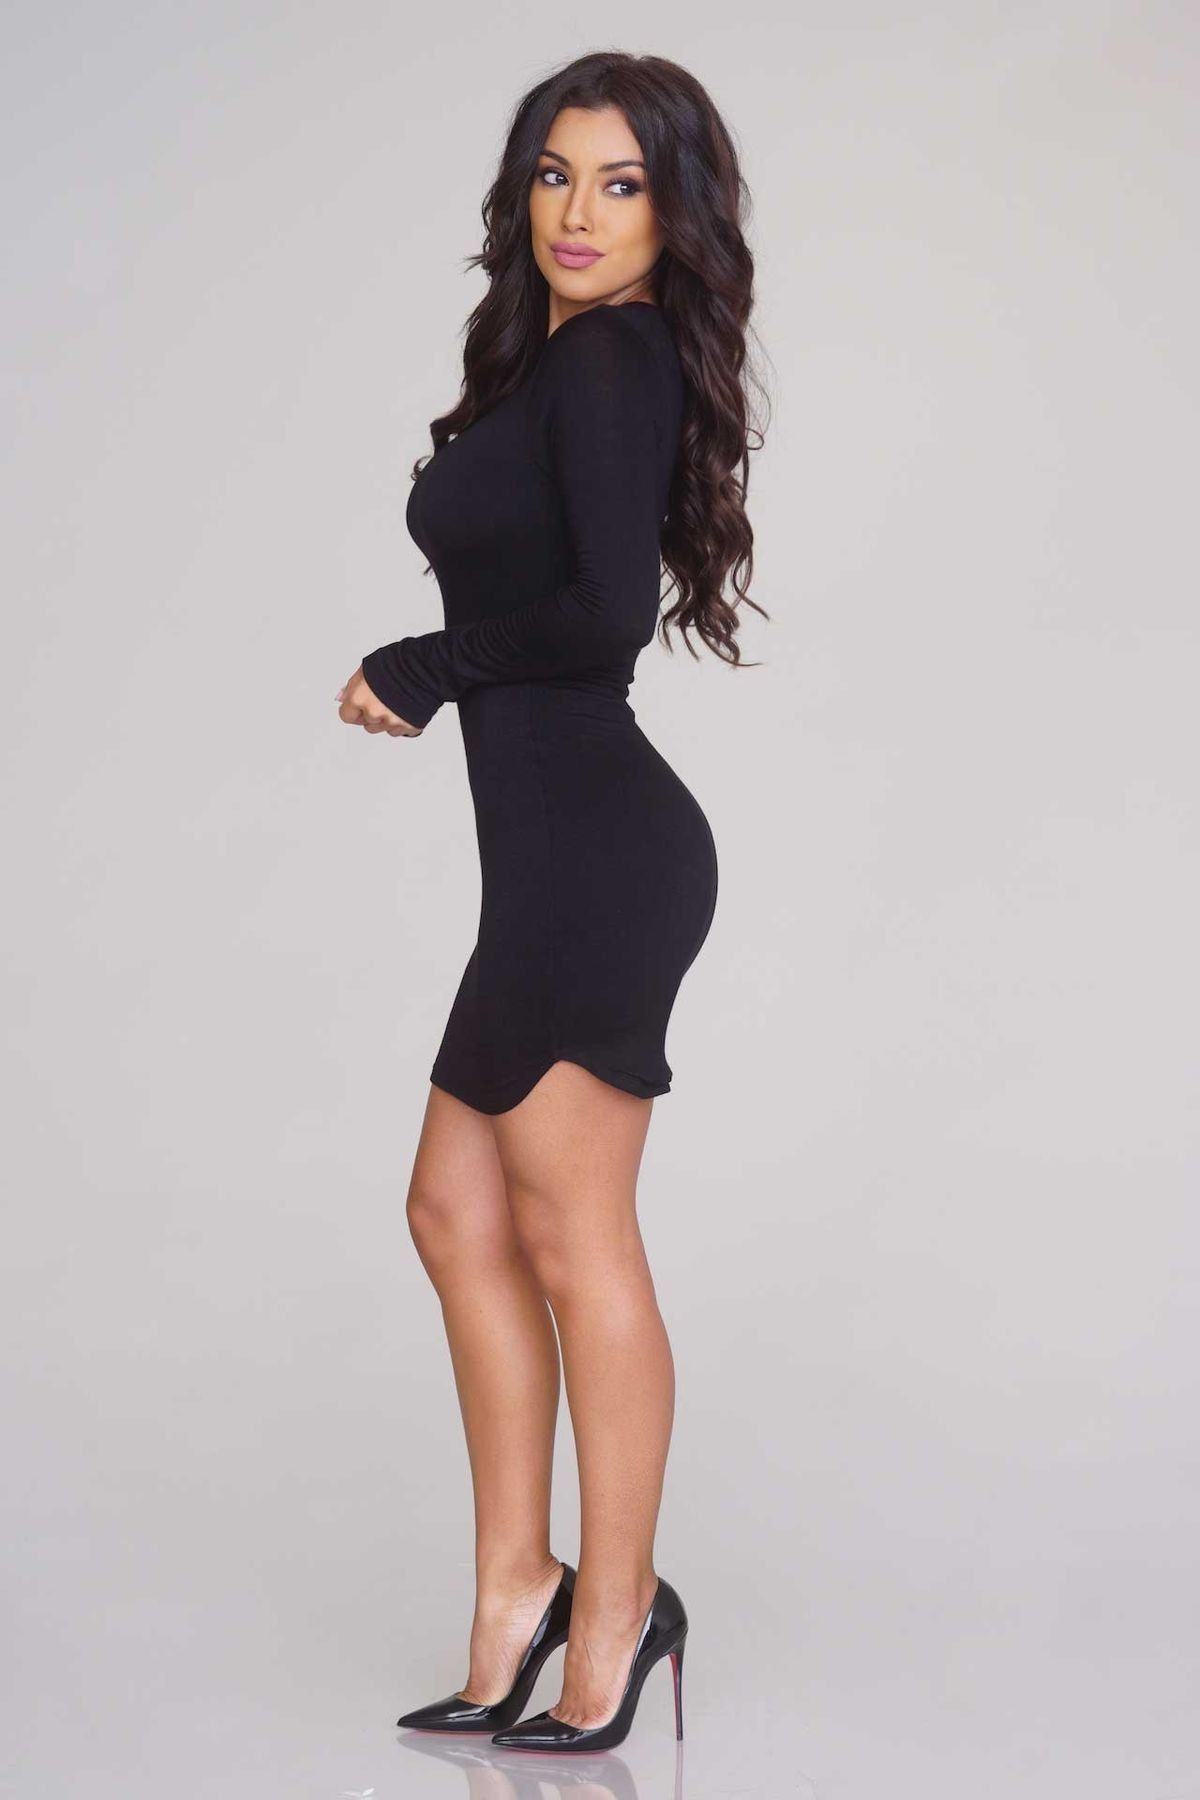 59bb0ae289044 Short Skirts, Short Dresses, Kylie Jenner, Leggings, Tights, Drop Dead  Gorgeous